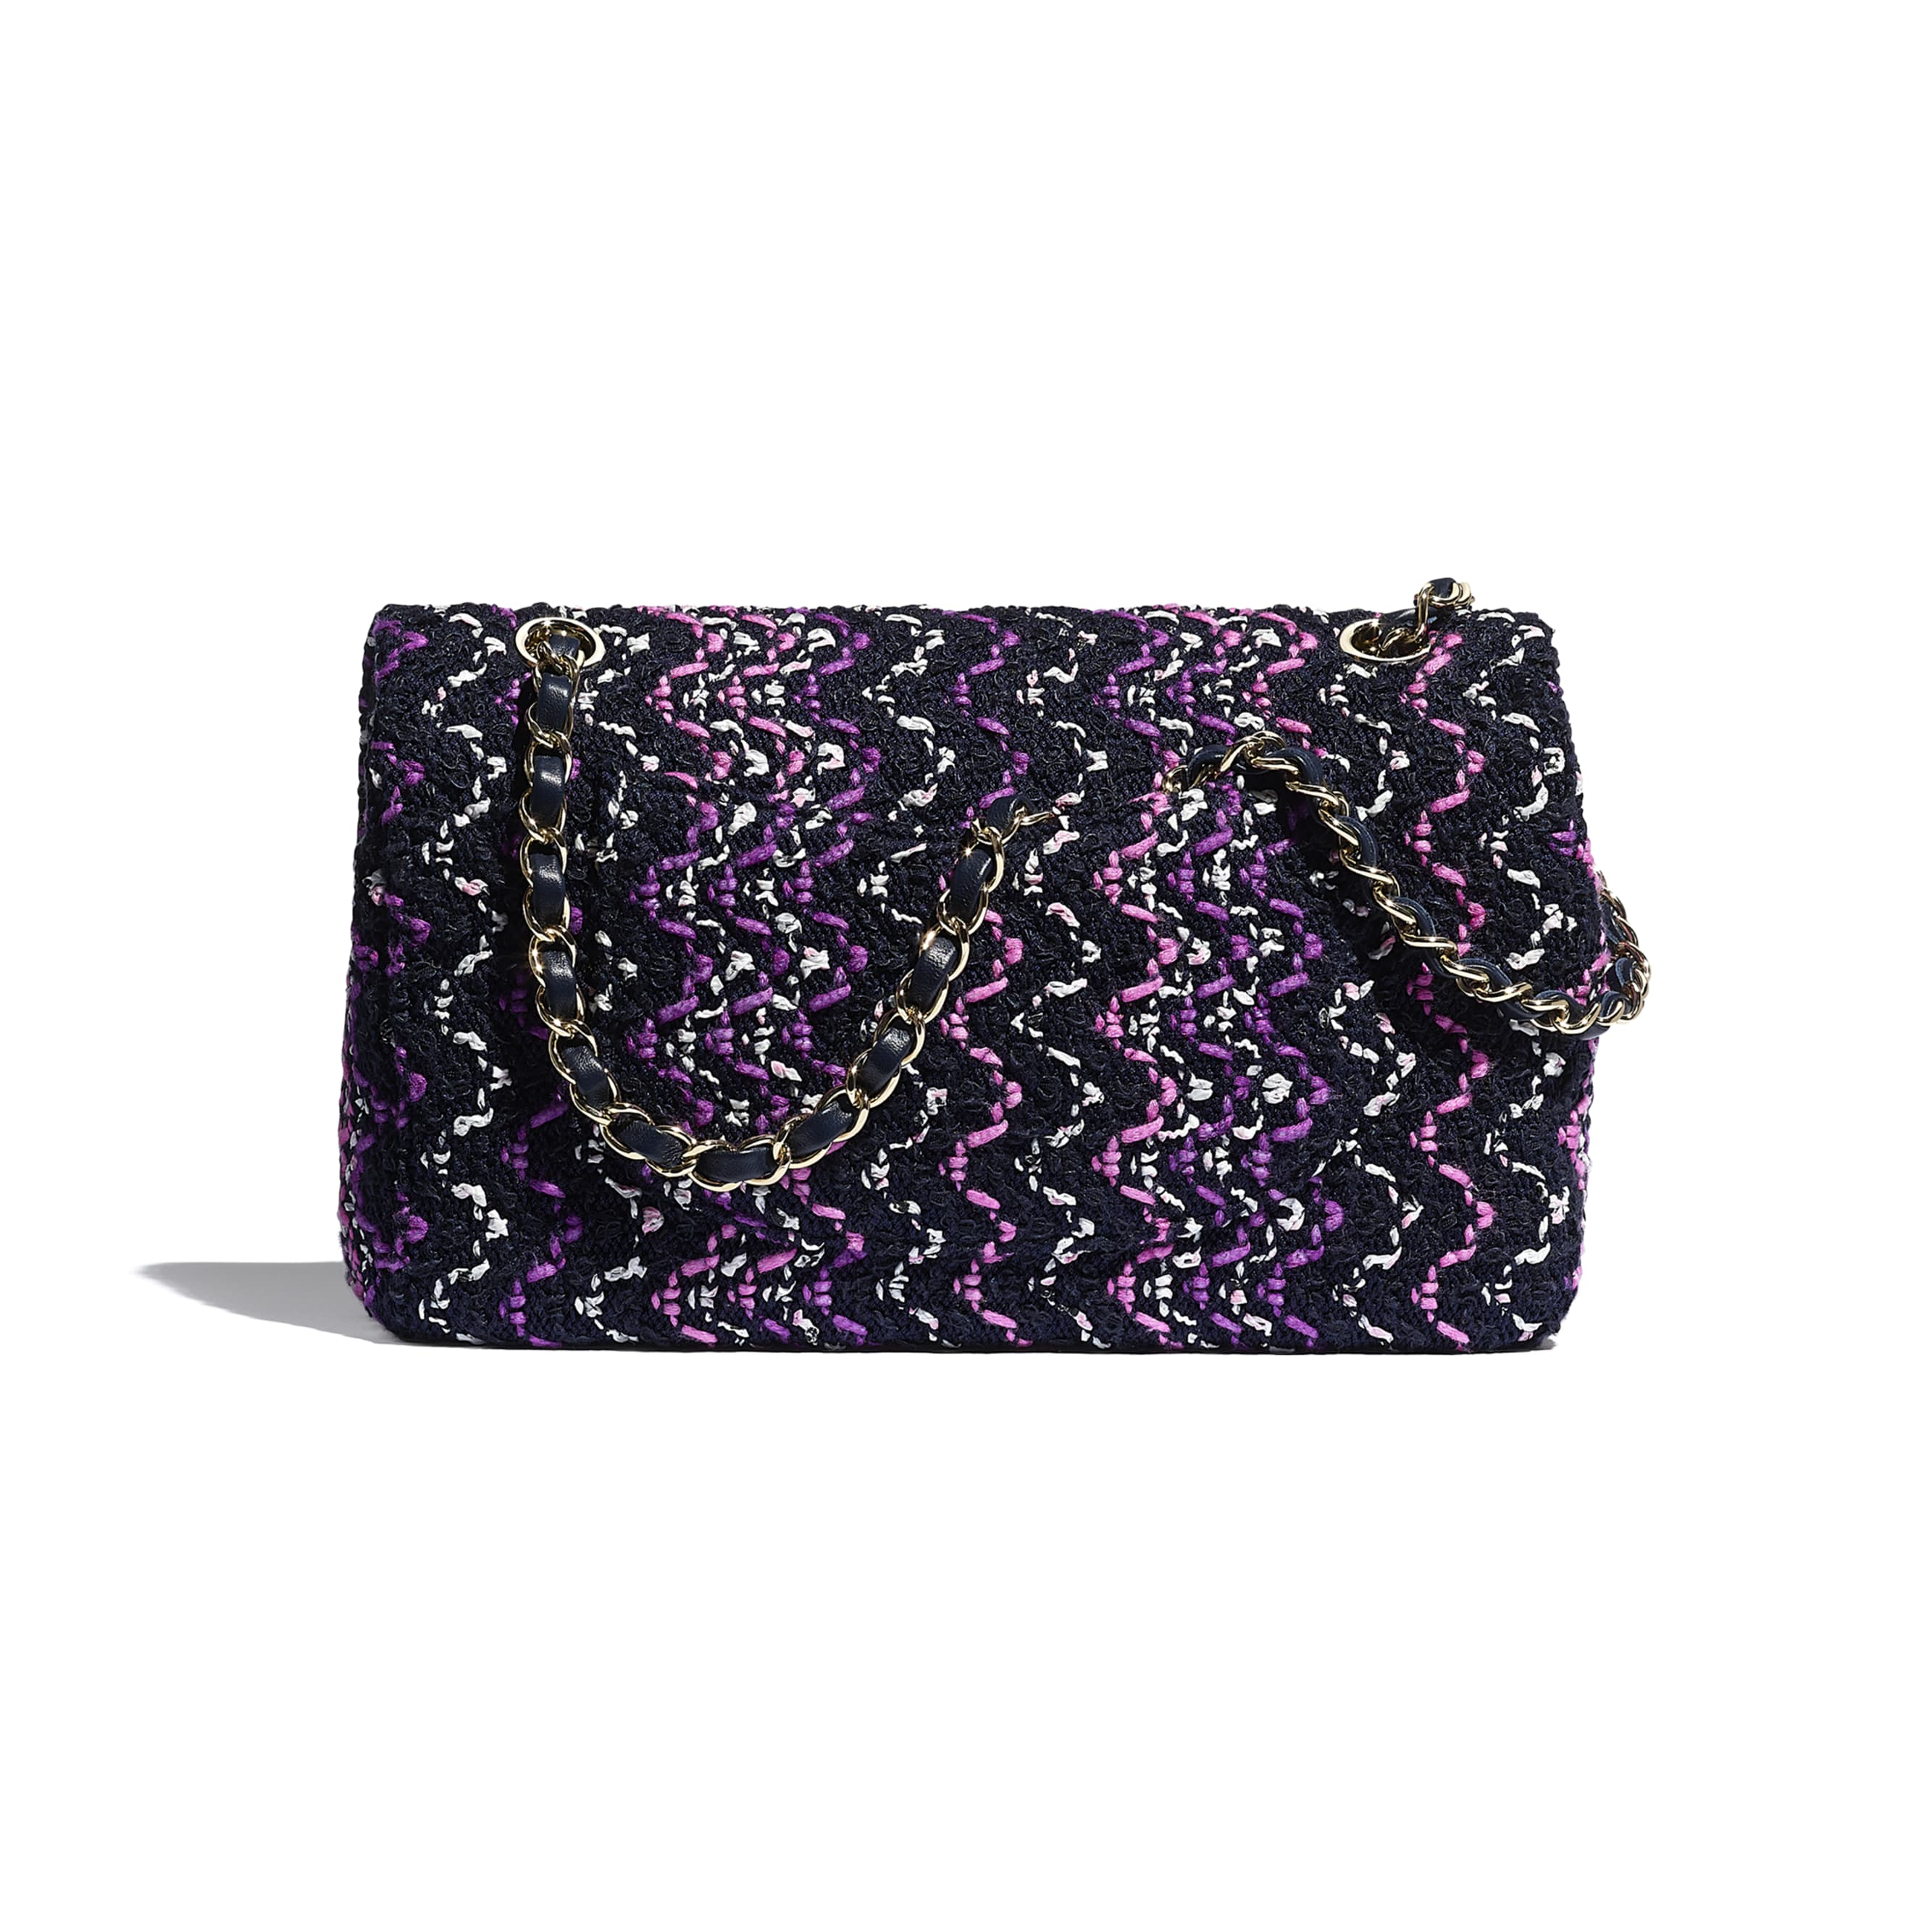 Flap Bag - Navy Blue, Purple & Pink - Cotton & Gold-Tone Metal - CHANEL - Alternative view - see standard sized version